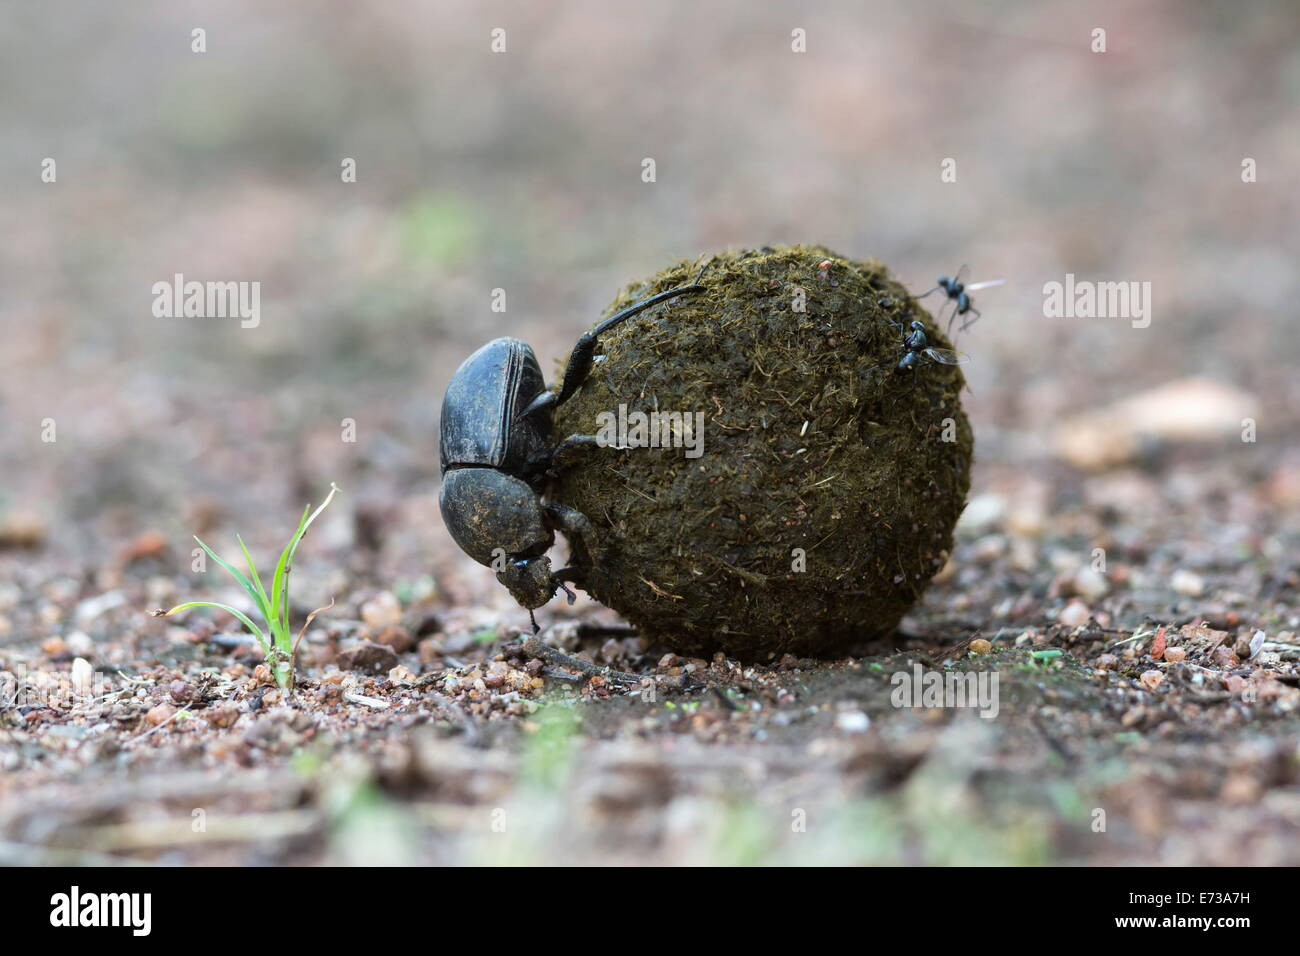 Dung beetle rolling ball it has made out of zebra dung, Pilanesberg National Park, North West Province, South Africa - Stock Image